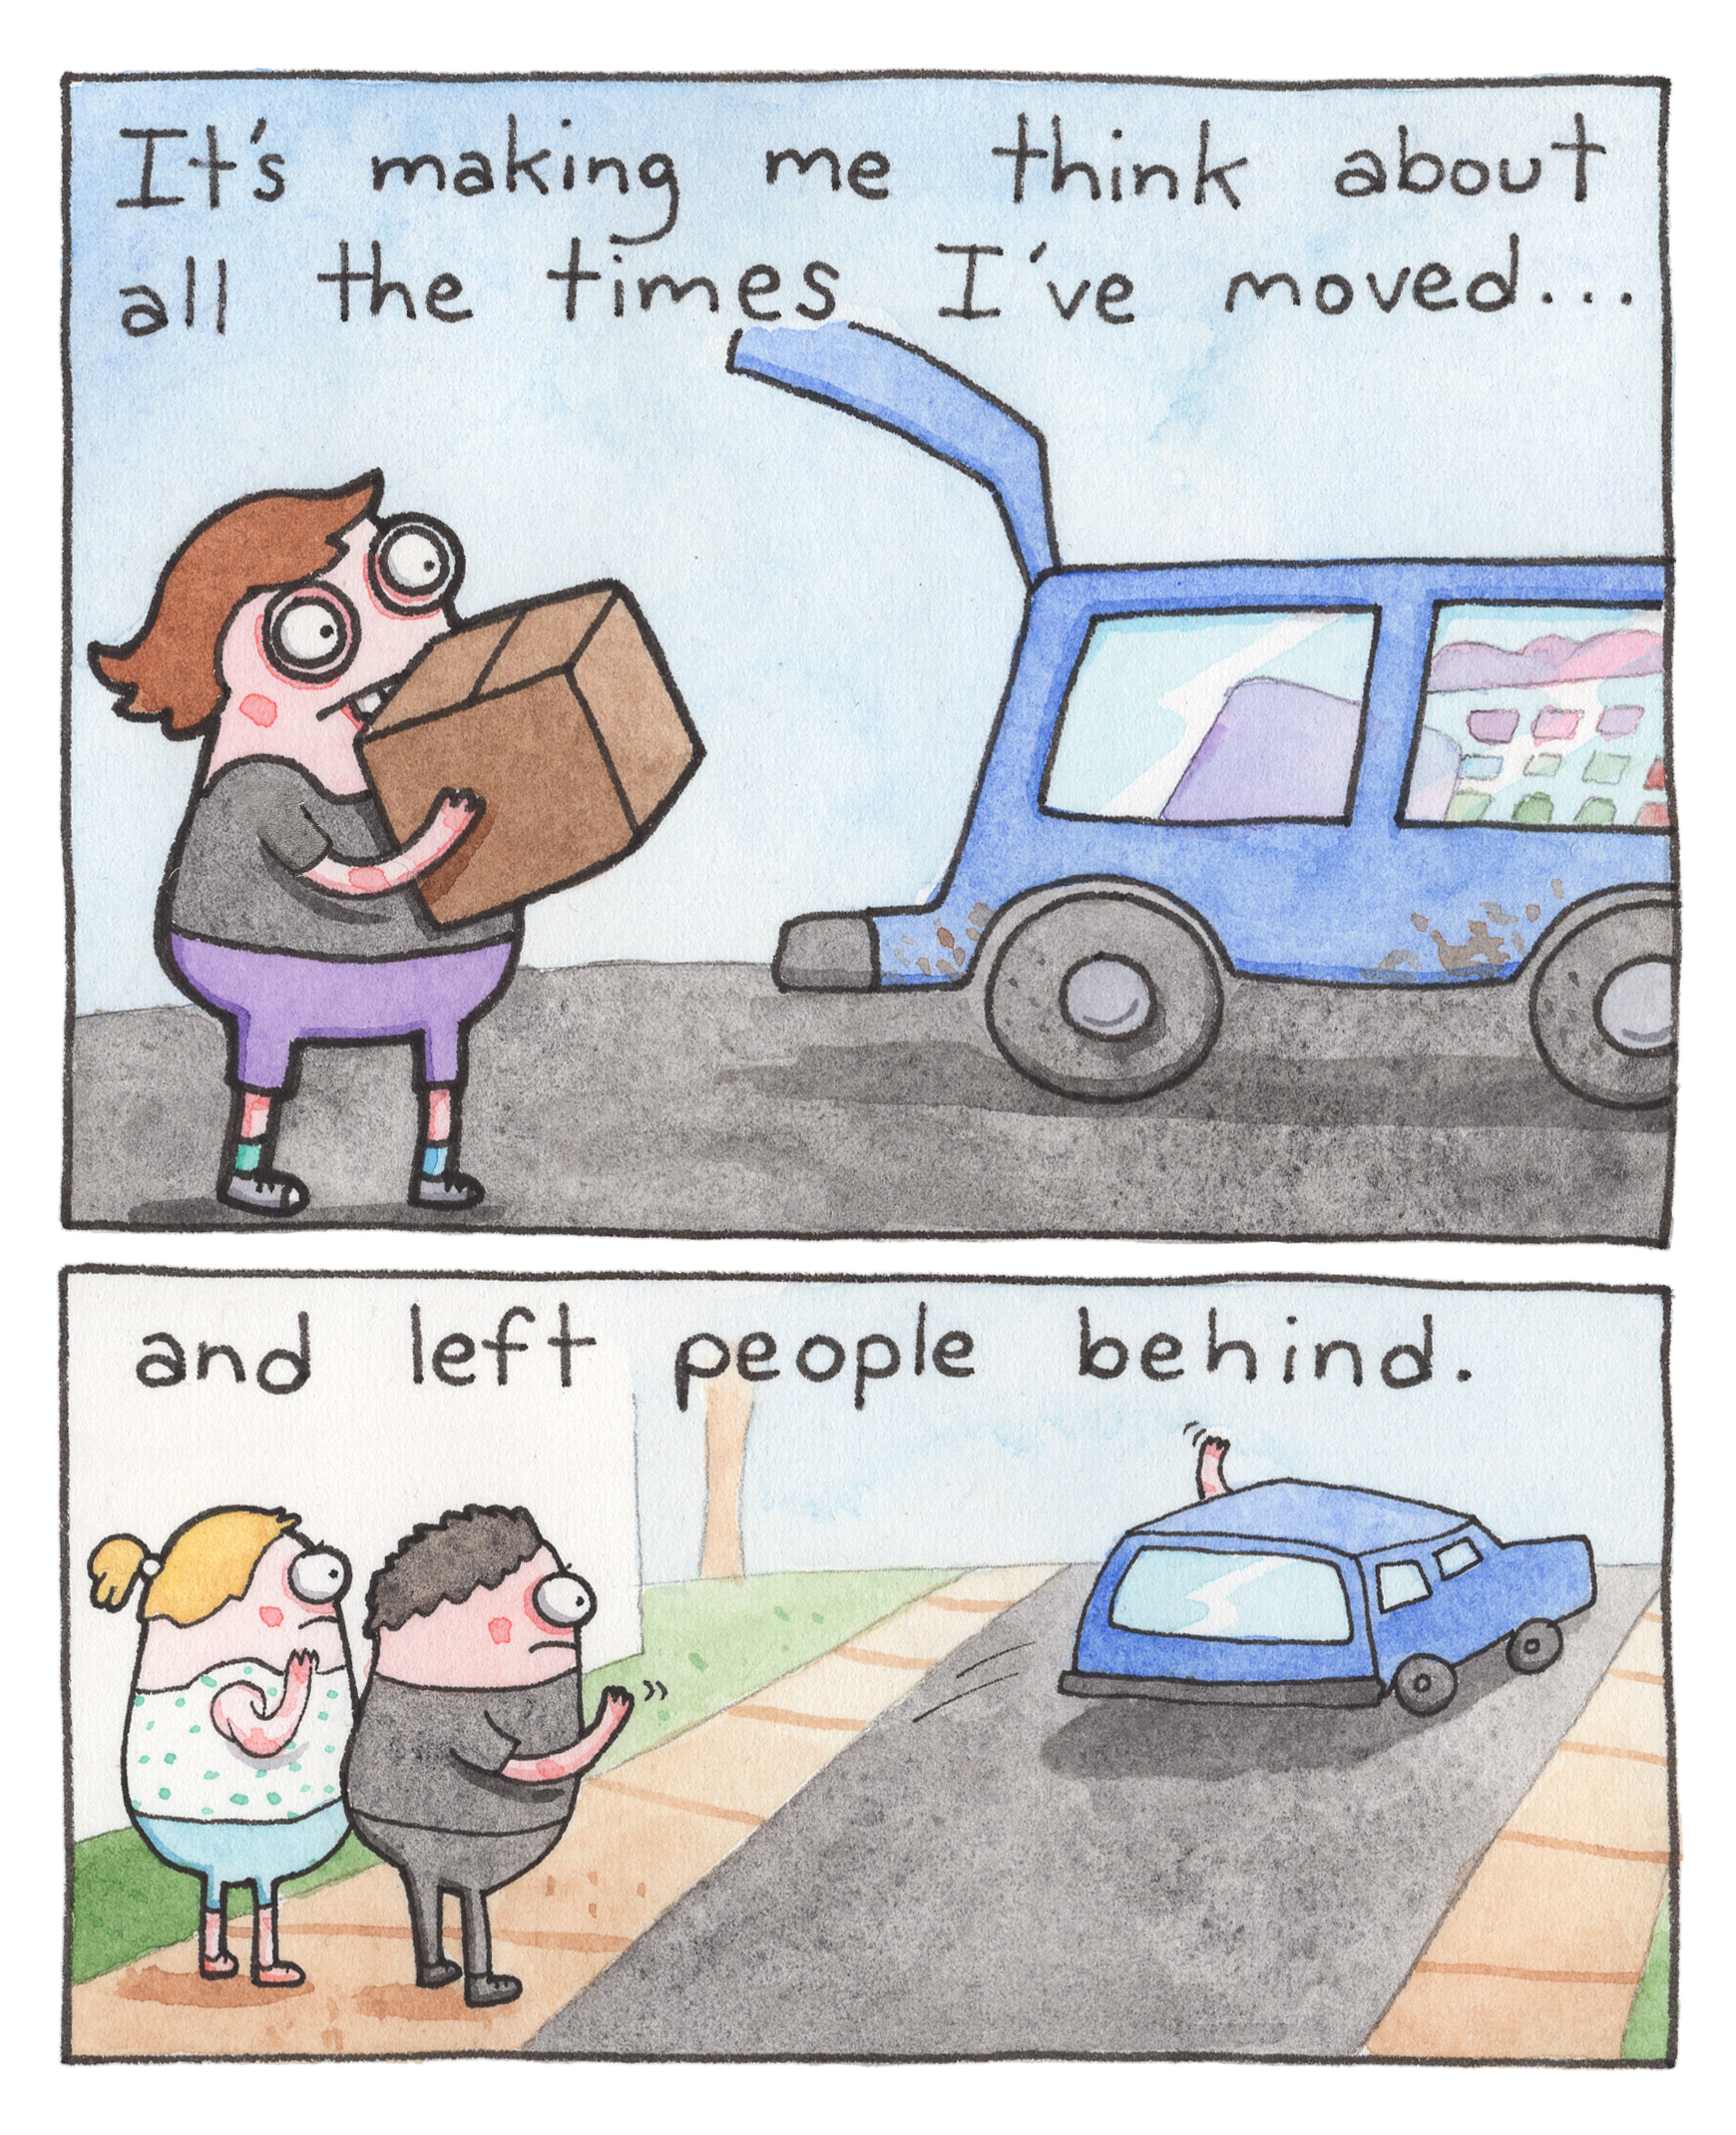 1-31 Moving Away 2.jpg